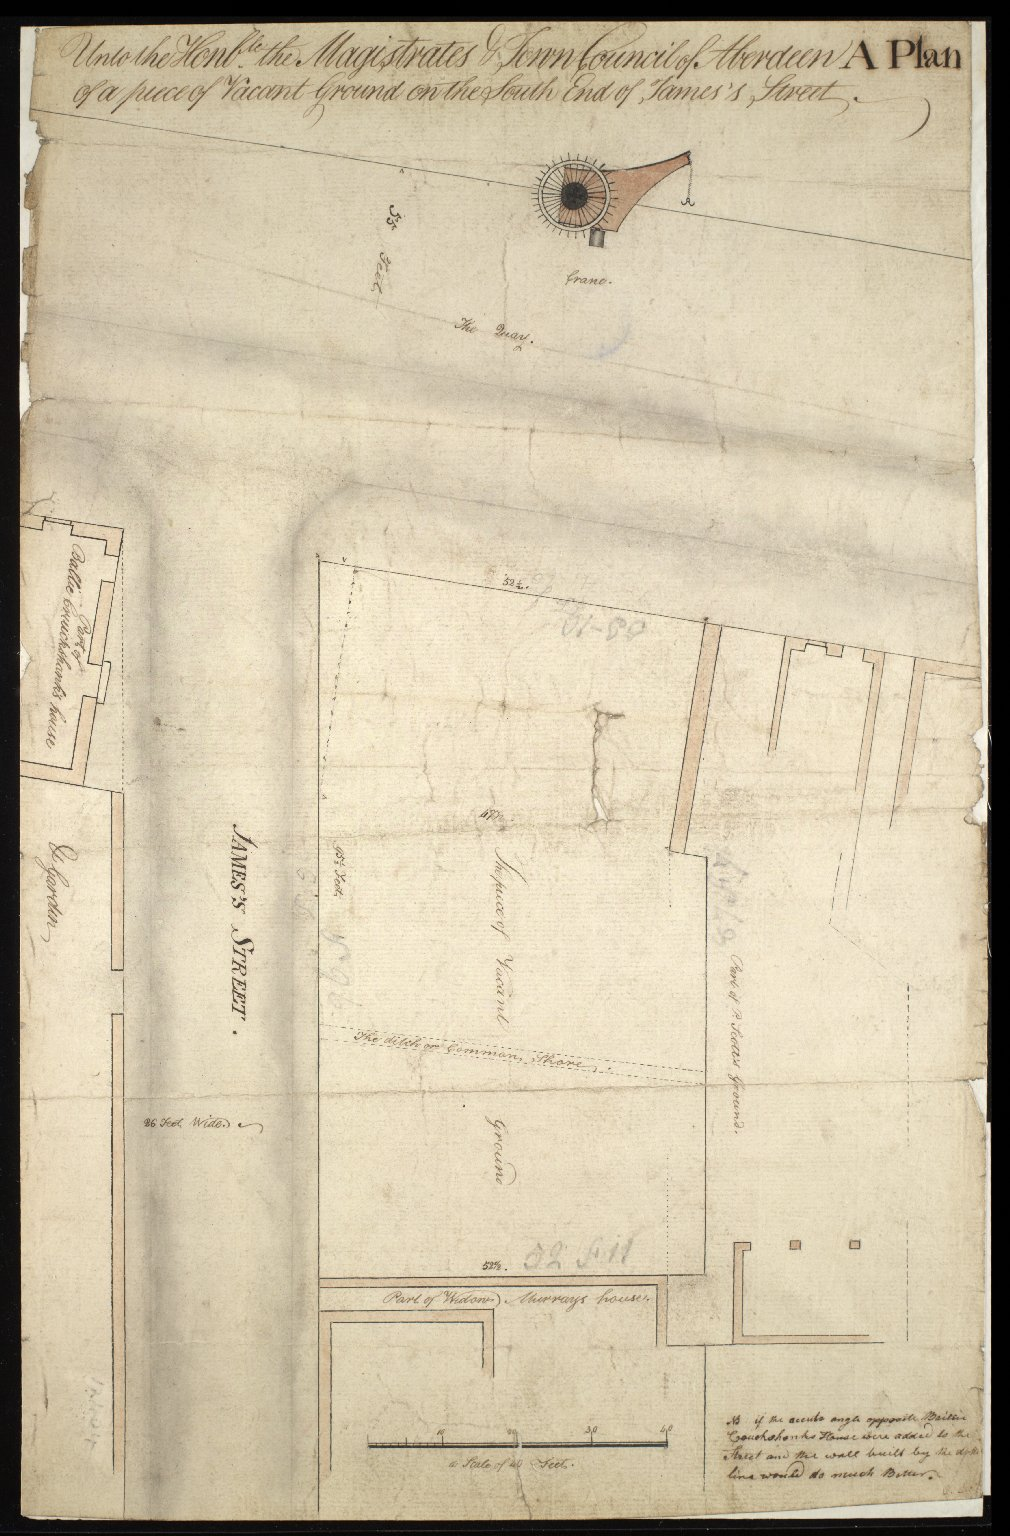 Unto the Honble. [i.e. Honourable] the Magistrates & Town Council of Aberdeen, A Plan of a piece of Vacant Ground on the South End of St. James's Street. [1 of 1]